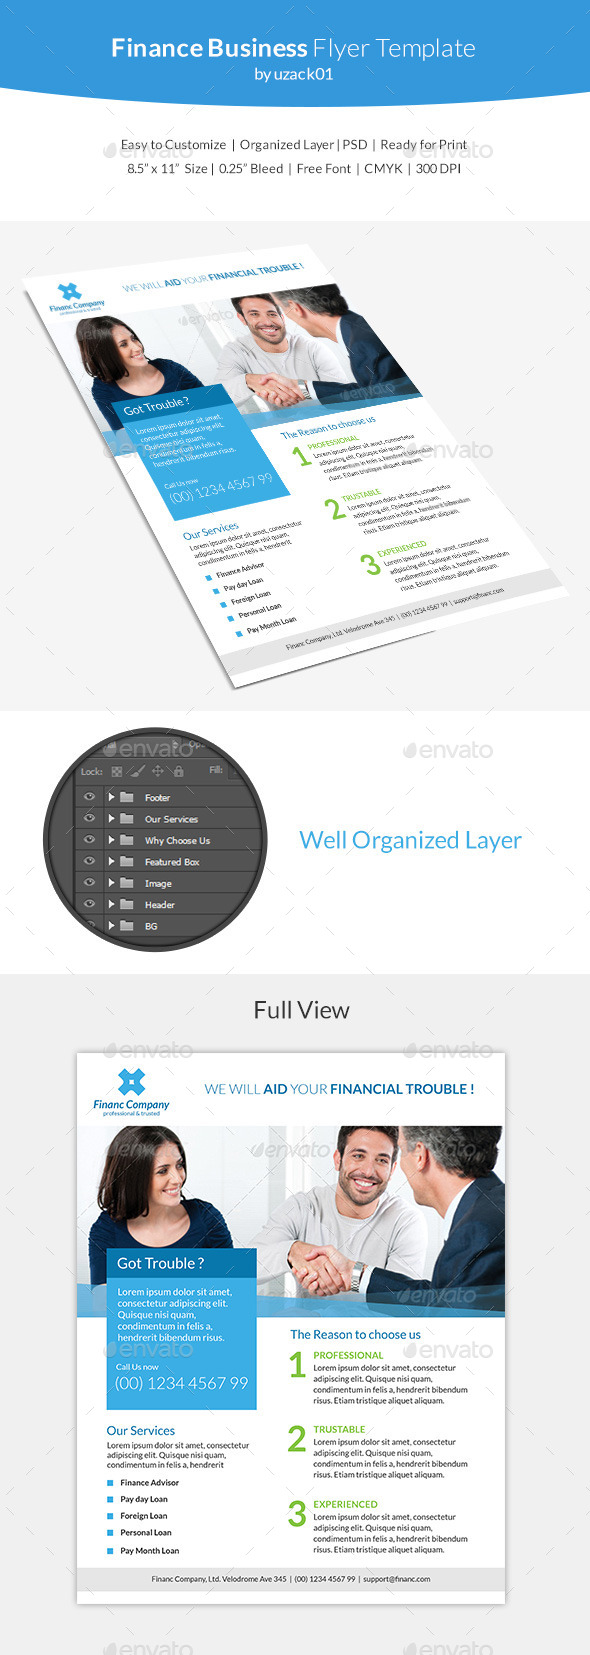 GraphicRiver Finance Business Flyer Template 10437414